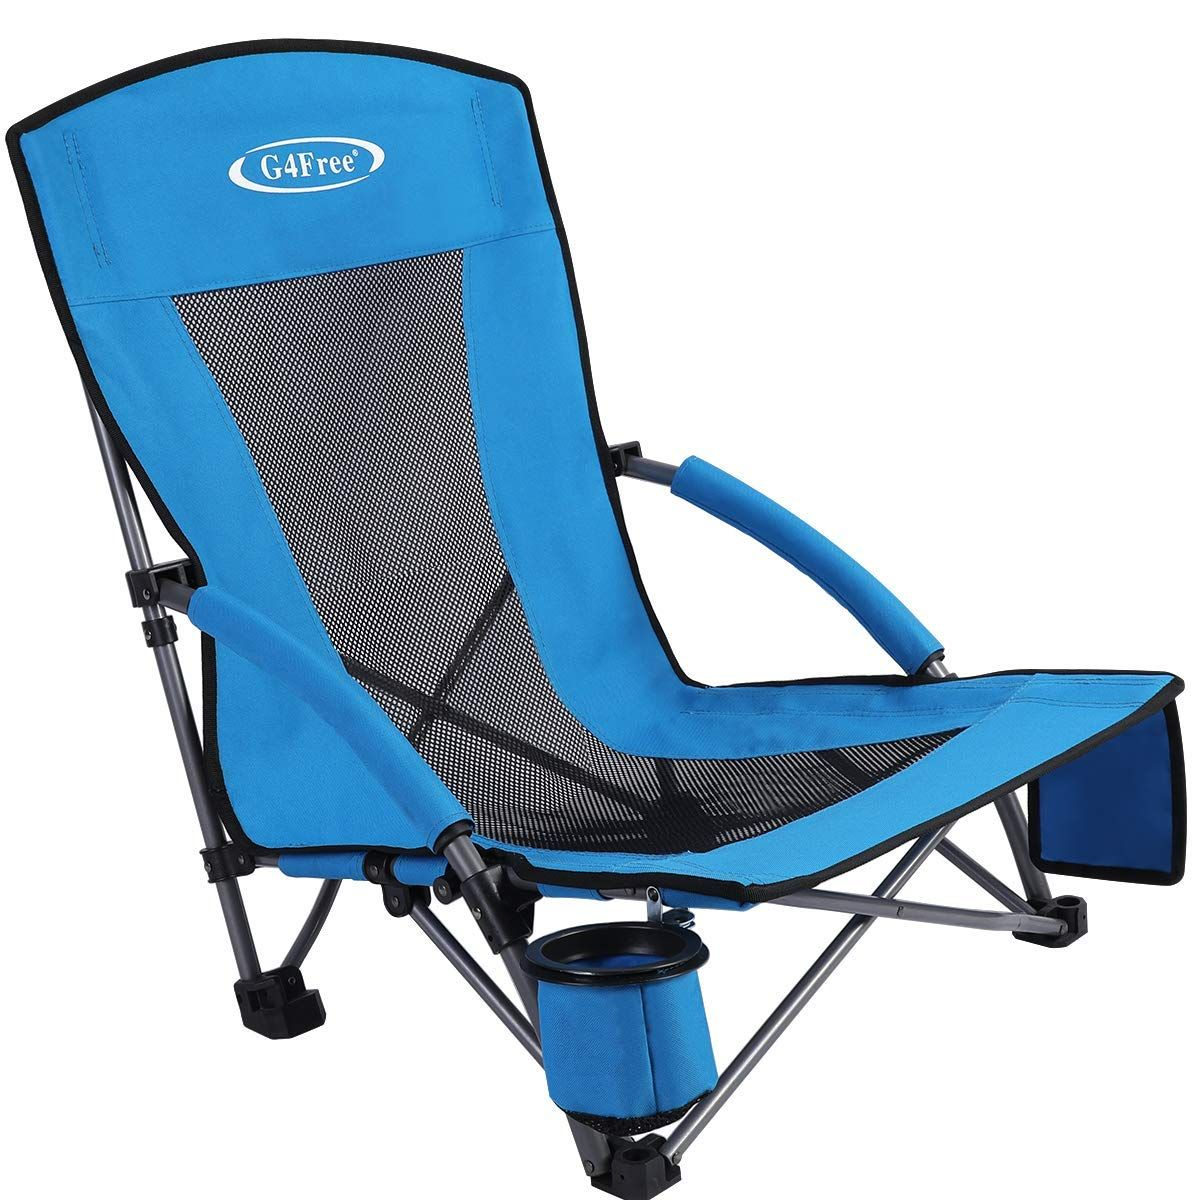 G4free Low Sling Folding Beach Chair Camping Chairs Compact Concert Lumbar Back Support Festival Chair With Car Outdoor Chairs Folding Beach Chair Beach Chairs